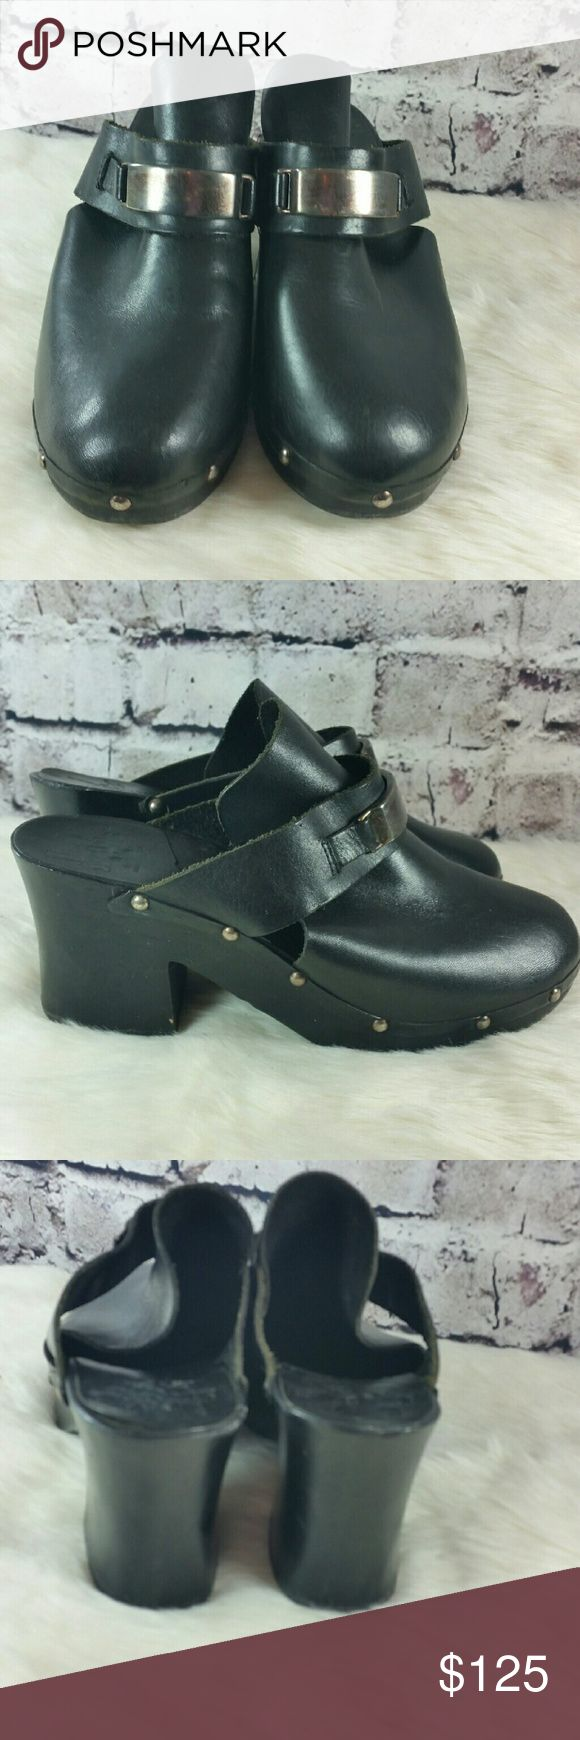 Coming soon Vtg black metal wood sole chunky mules clogs Shoes Mules & Clogs